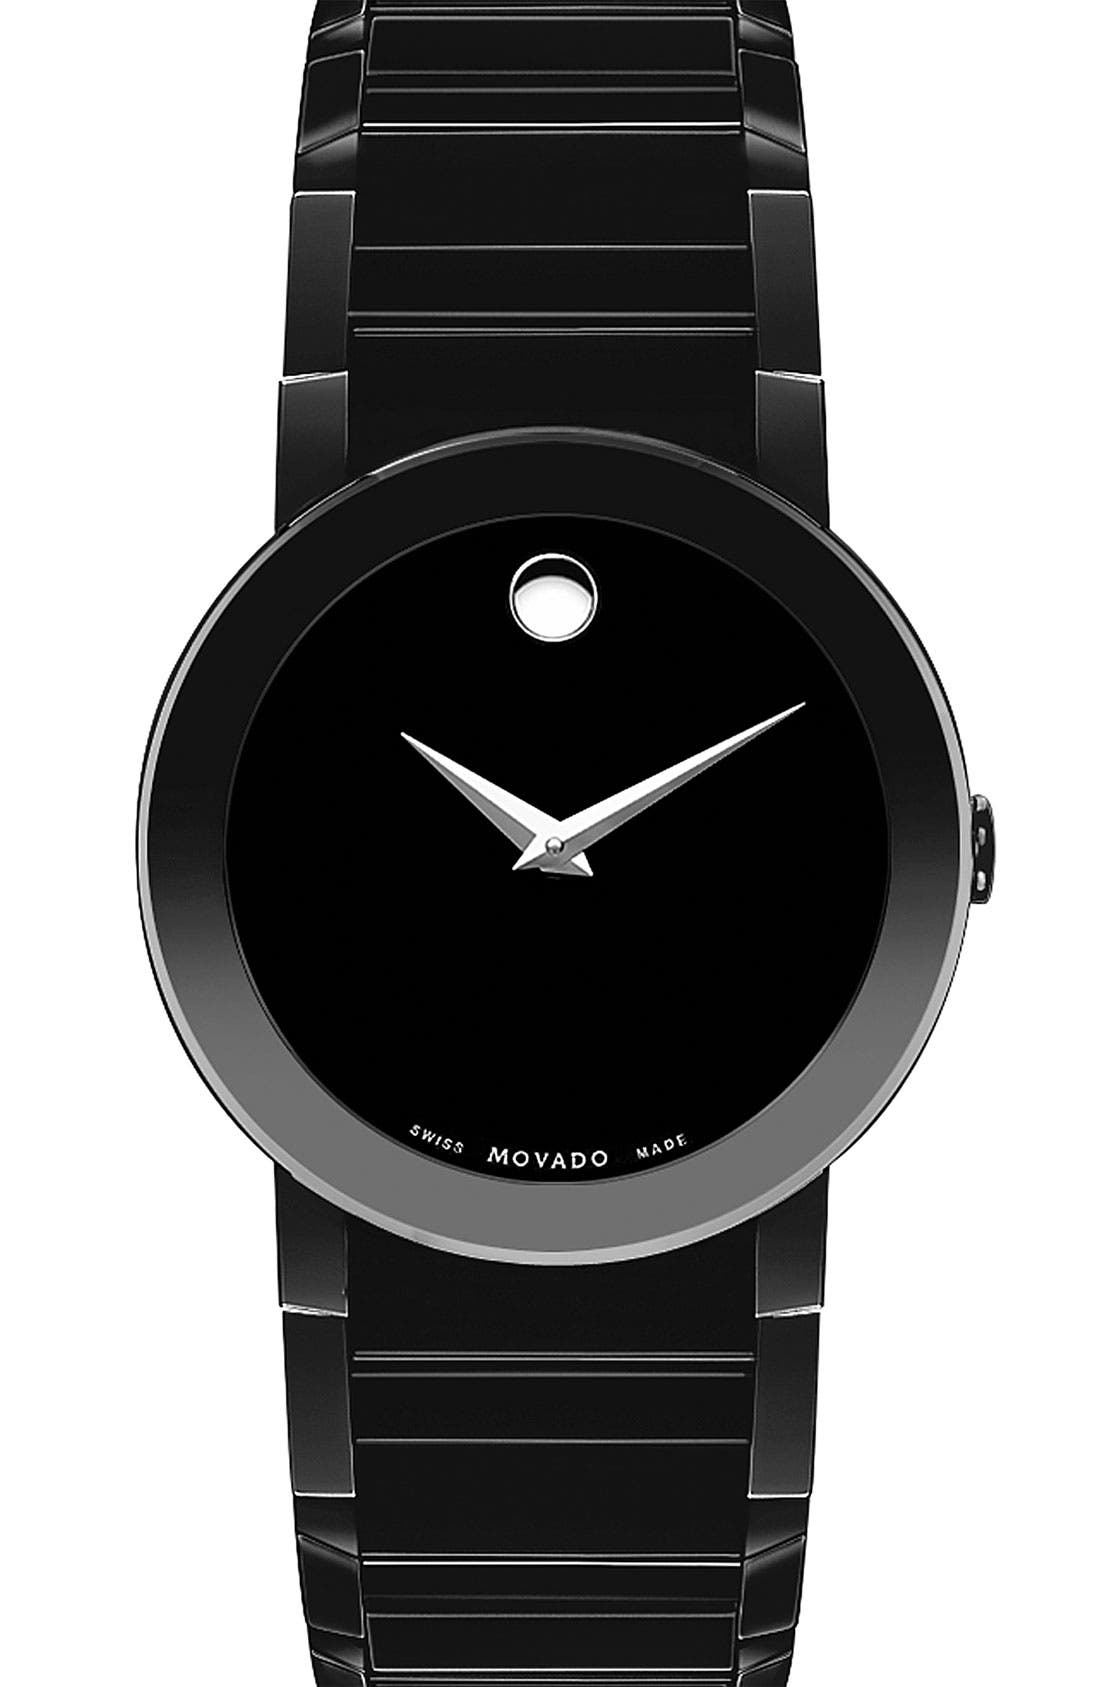 Main Image - Movado 'Sapphire' Watch, 40mm